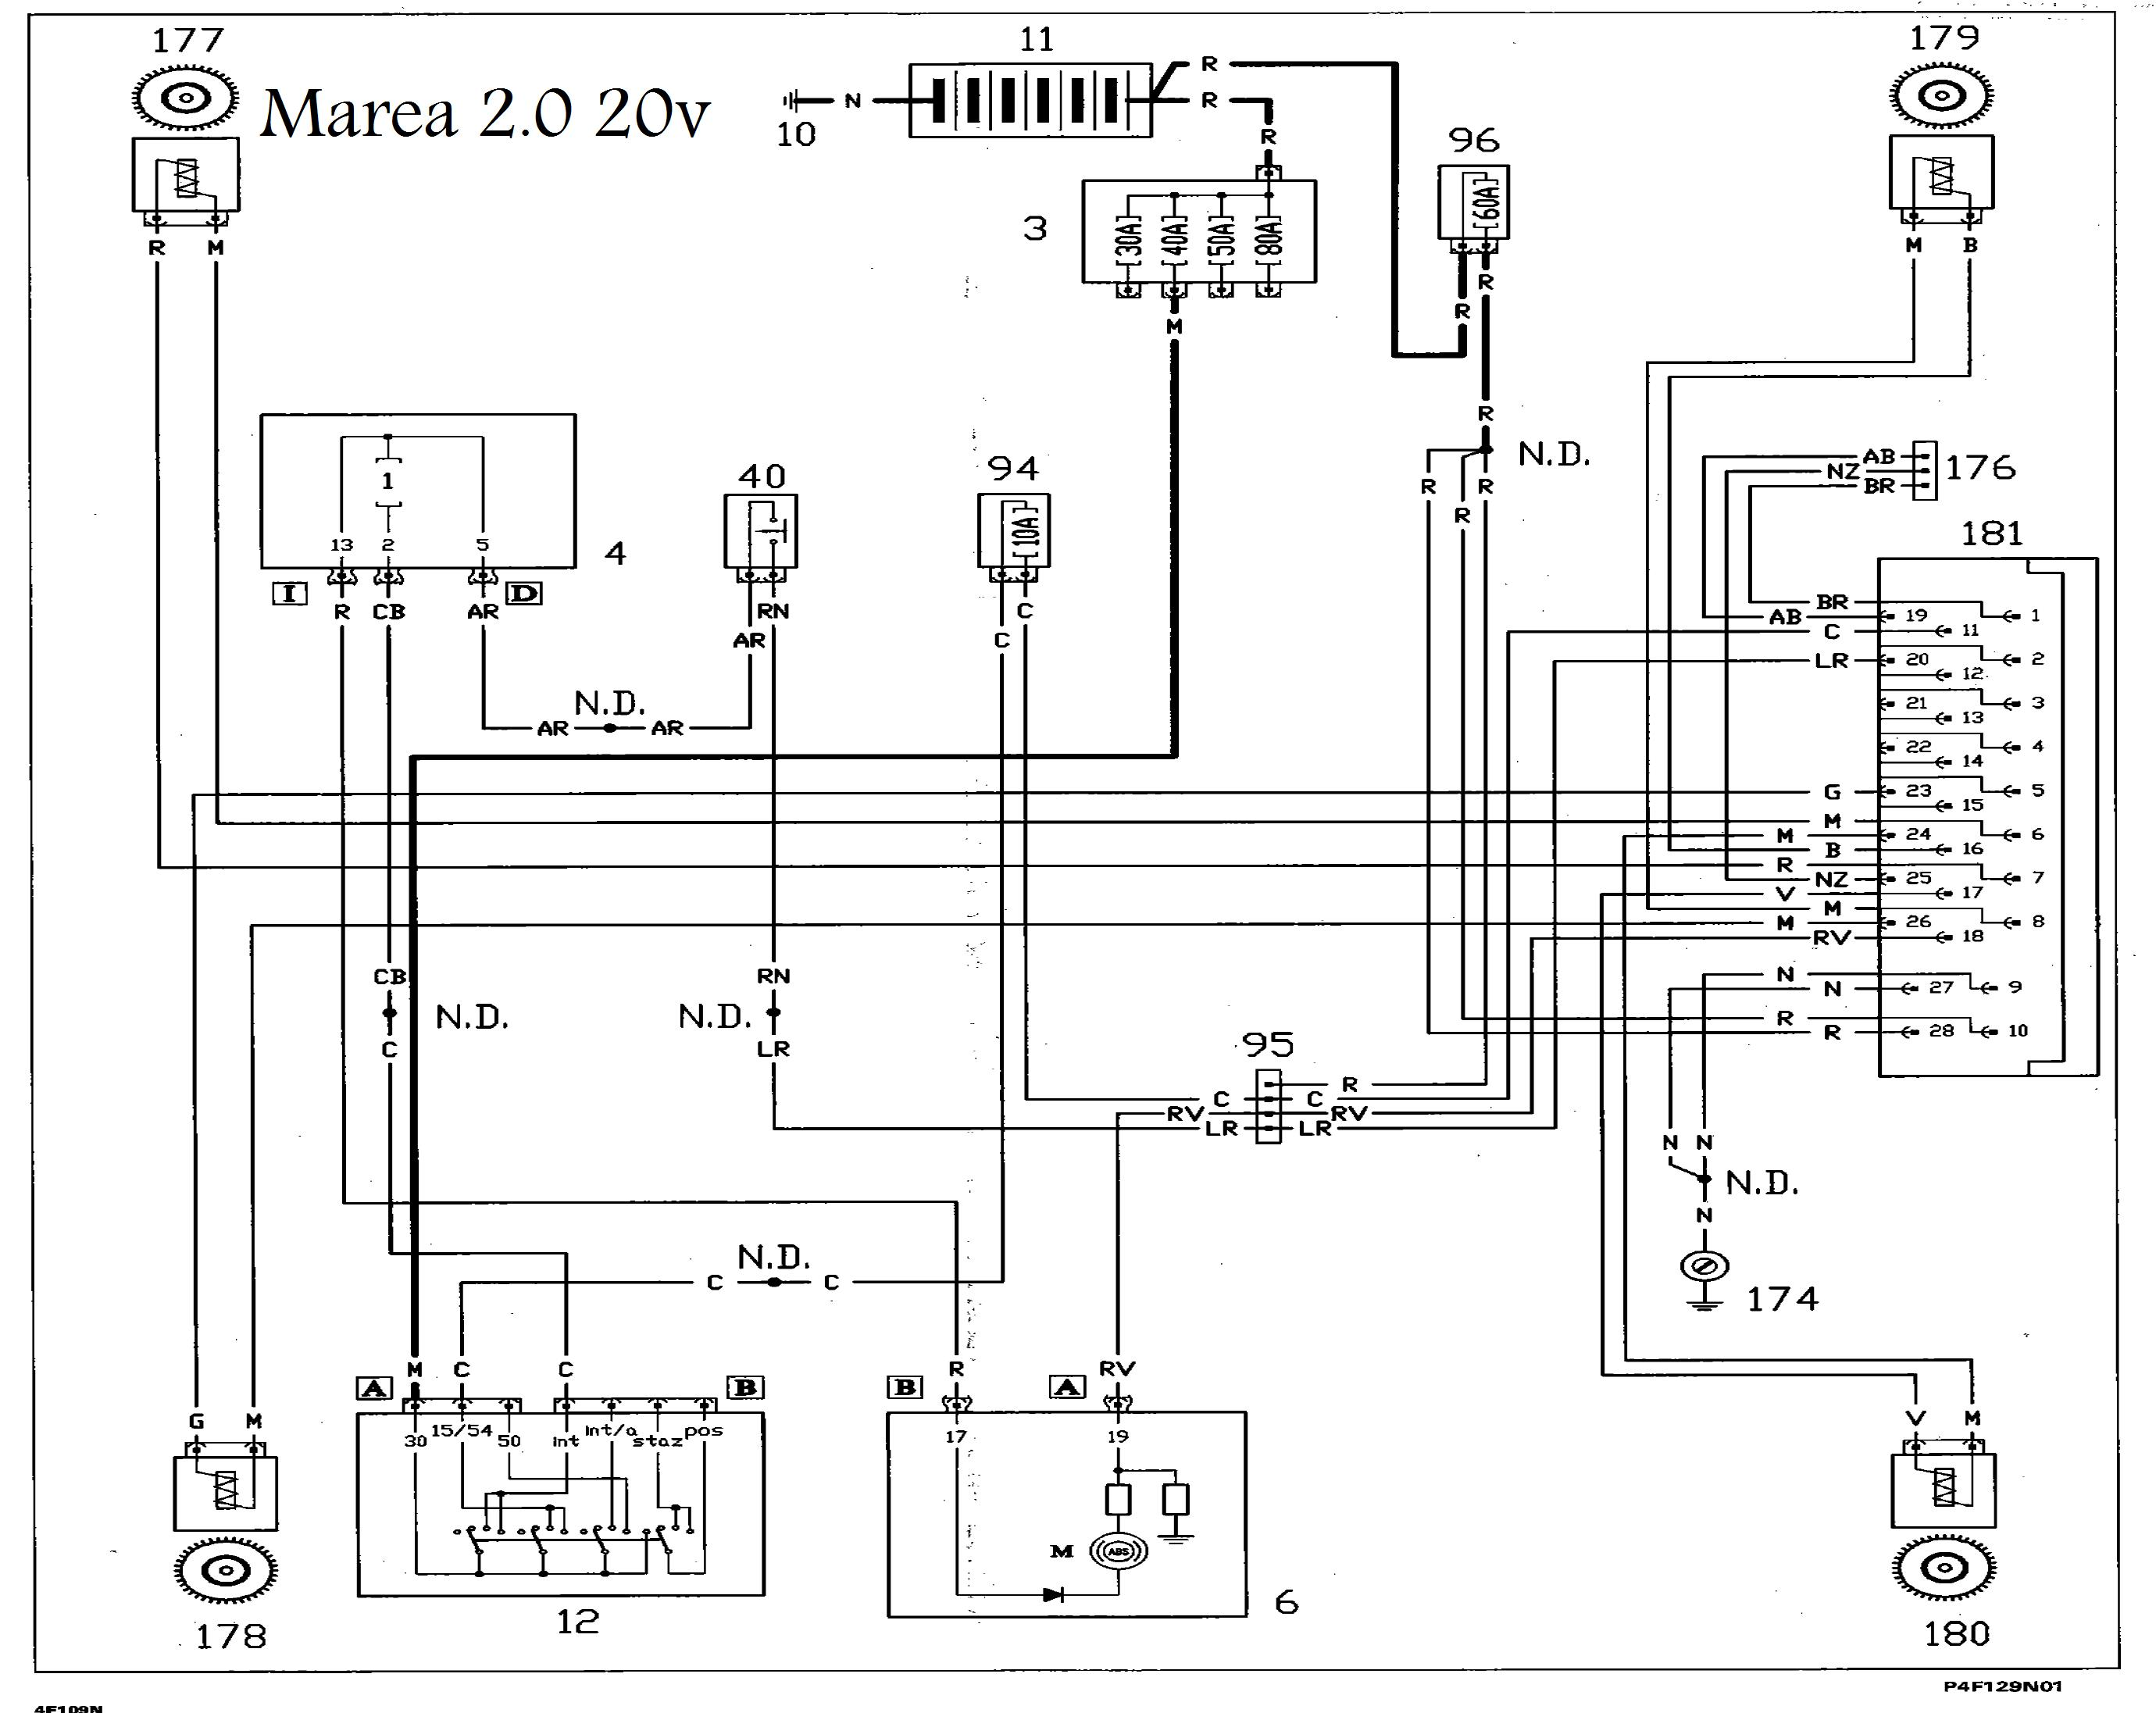 Fiat Punto Wiring Diagram For Stereo : 36 Wiring Diagram